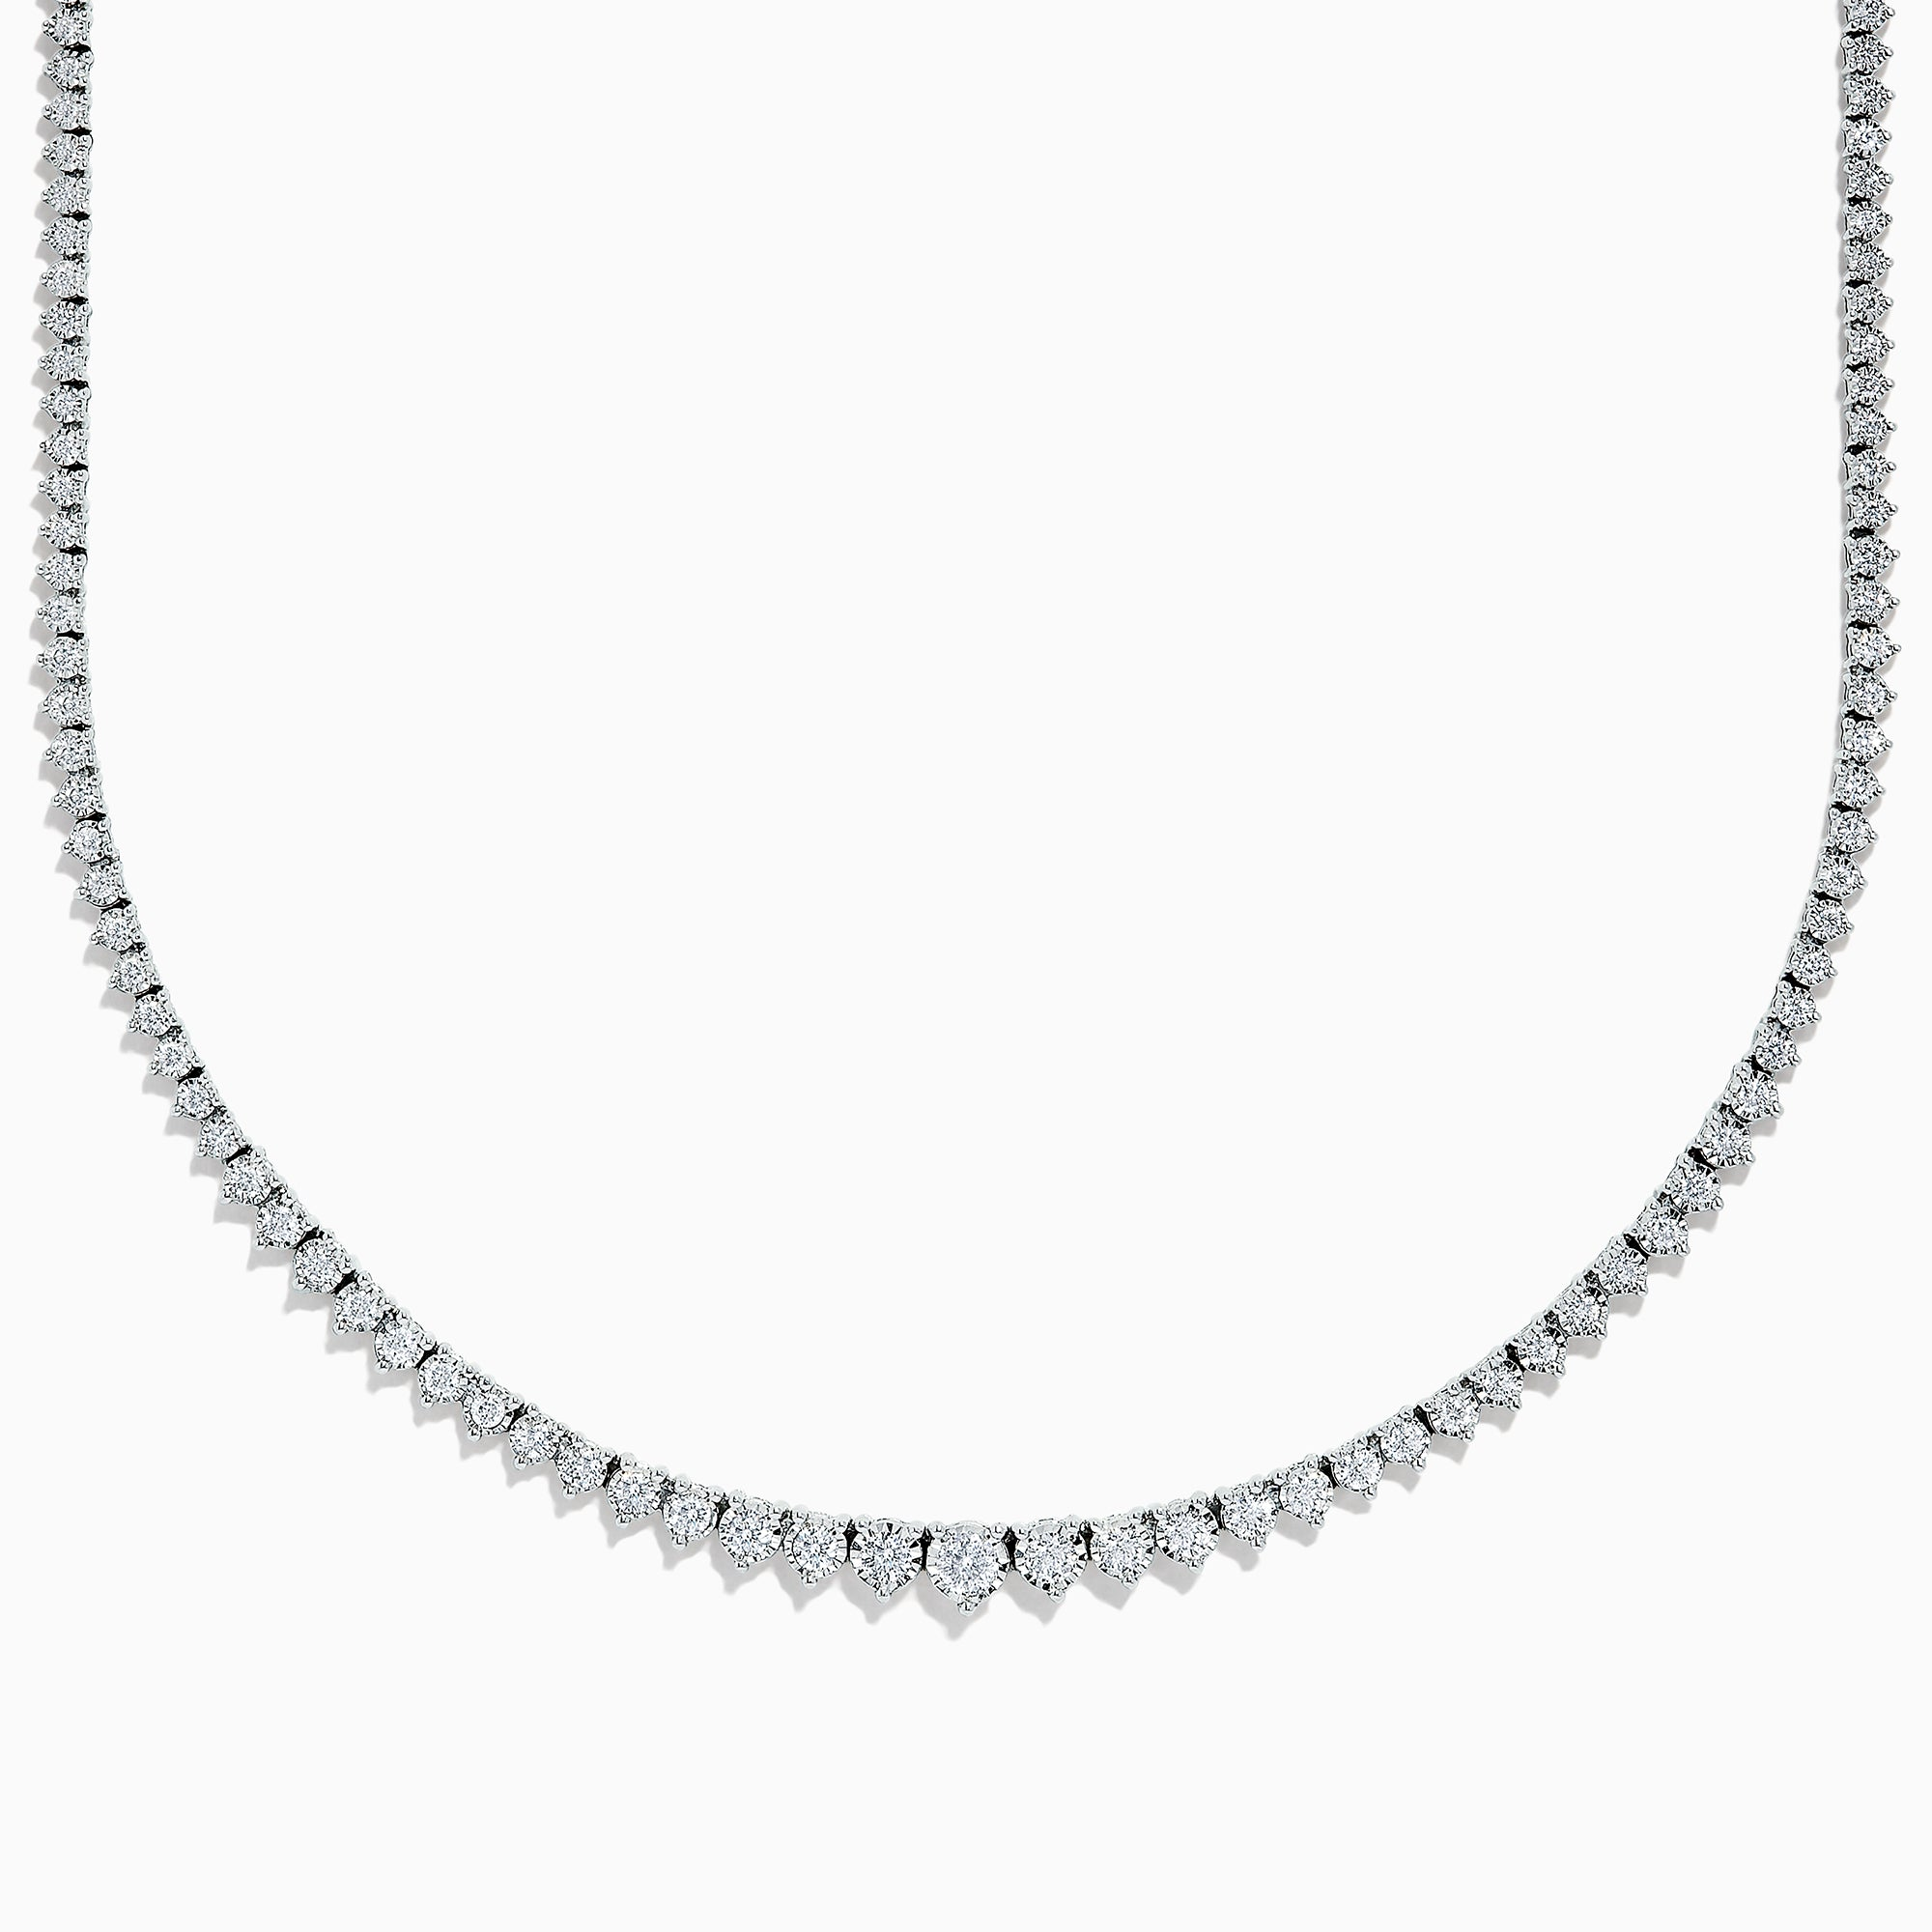 Effy Pave Classica 14K White Gold Diamond Necklace, 2.91 TCW